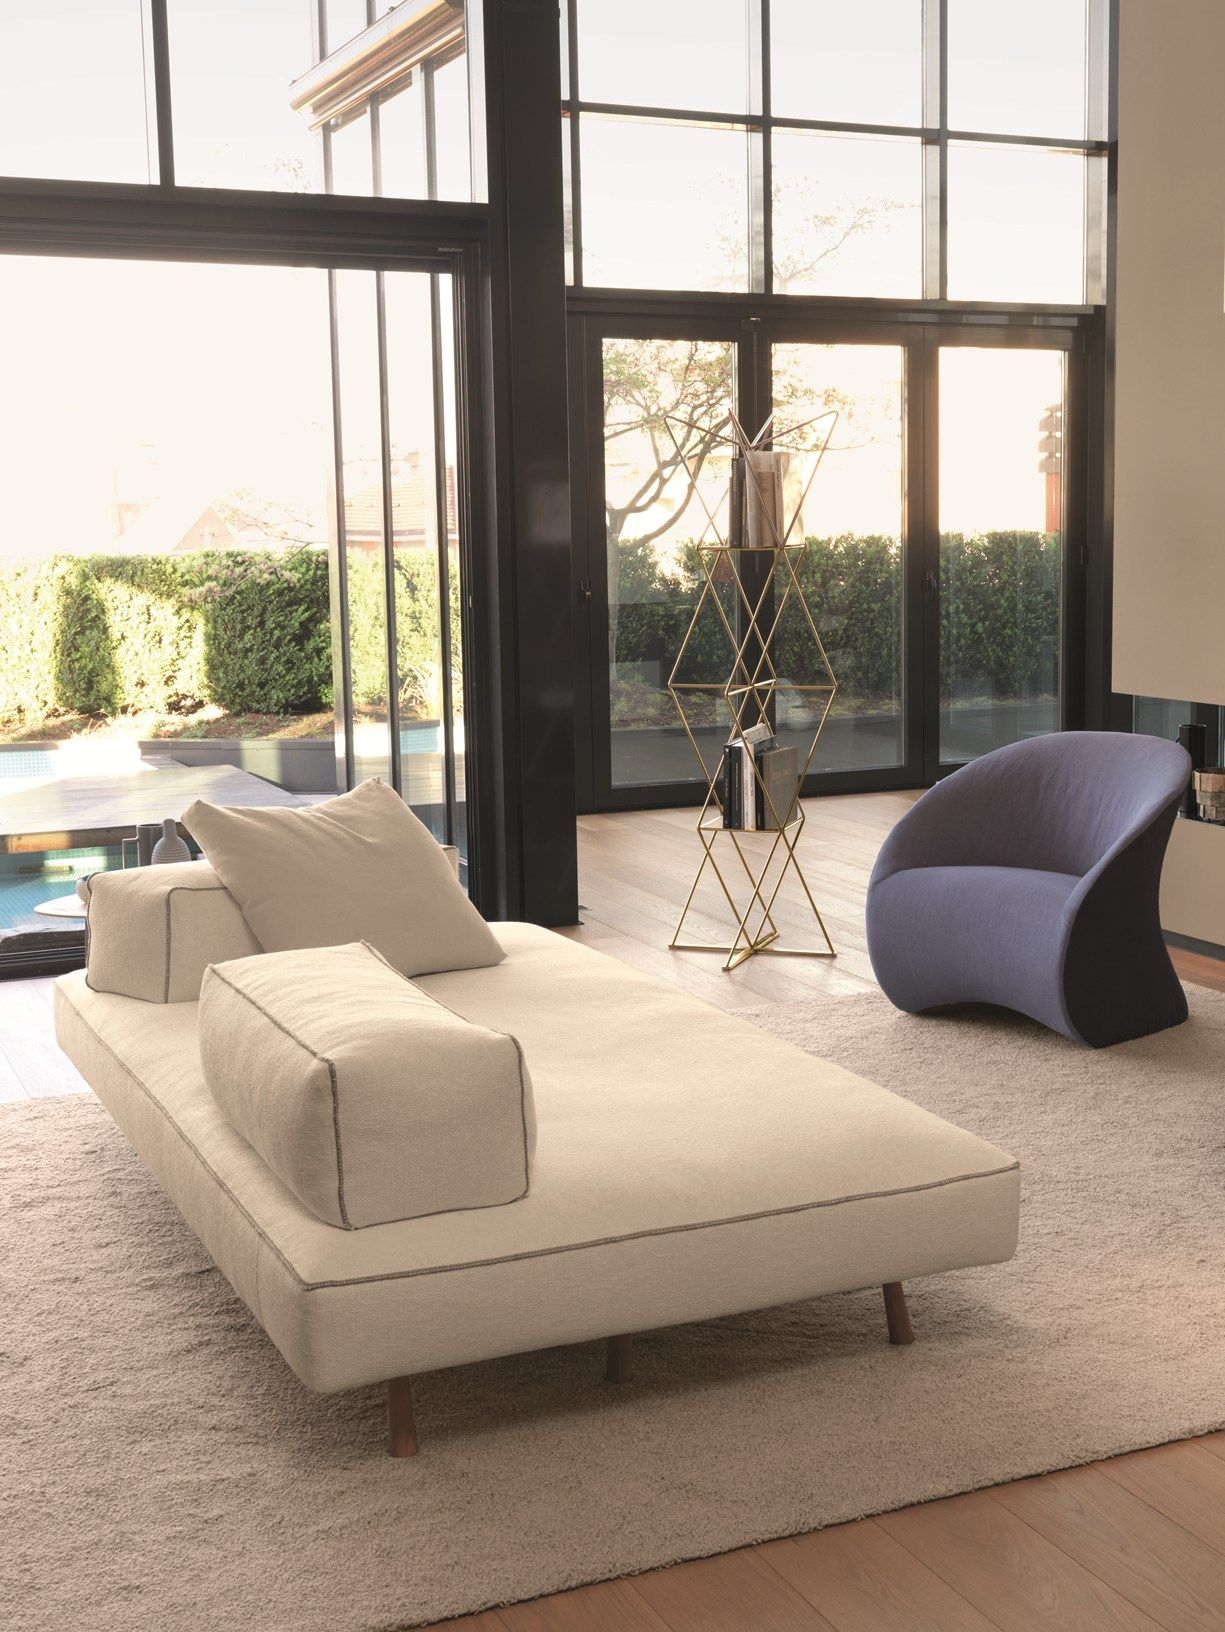 Euromobil Group presents the 'Total Home' at iSaloni 2014